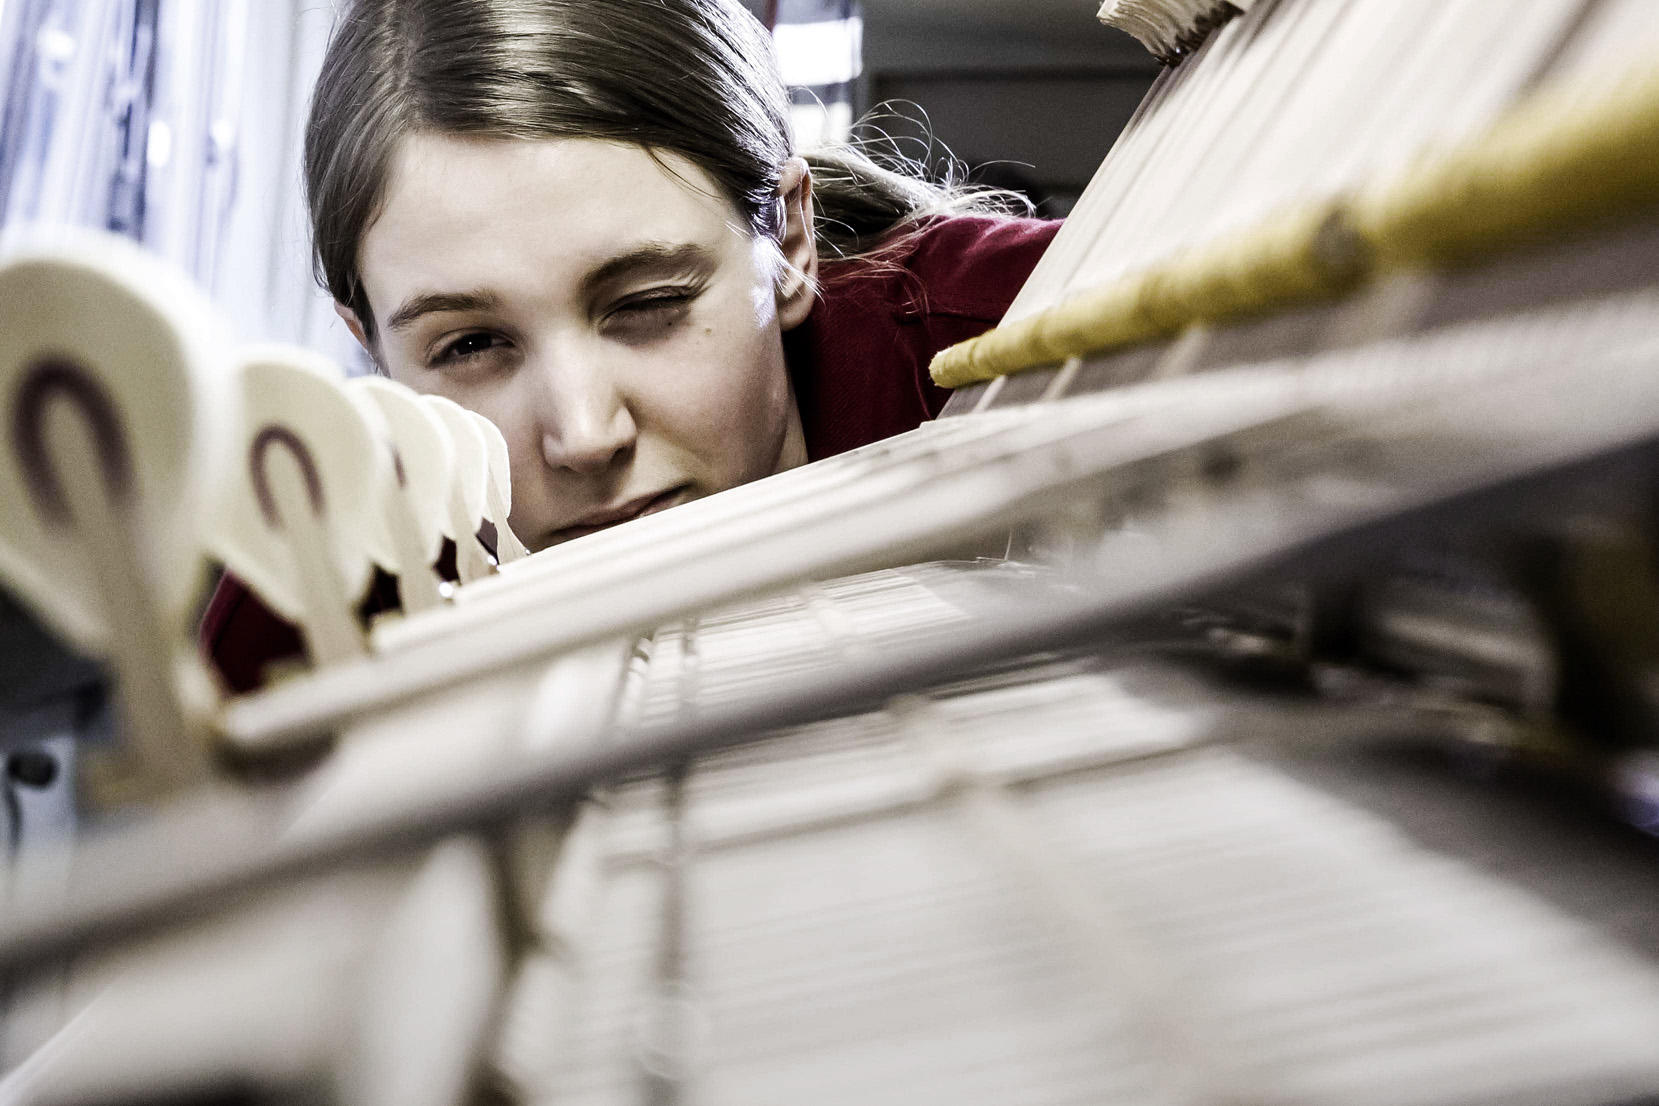 Reloaded twaddle – RT @SteinwayAndSons: To build the best piano possible has always been the clai...